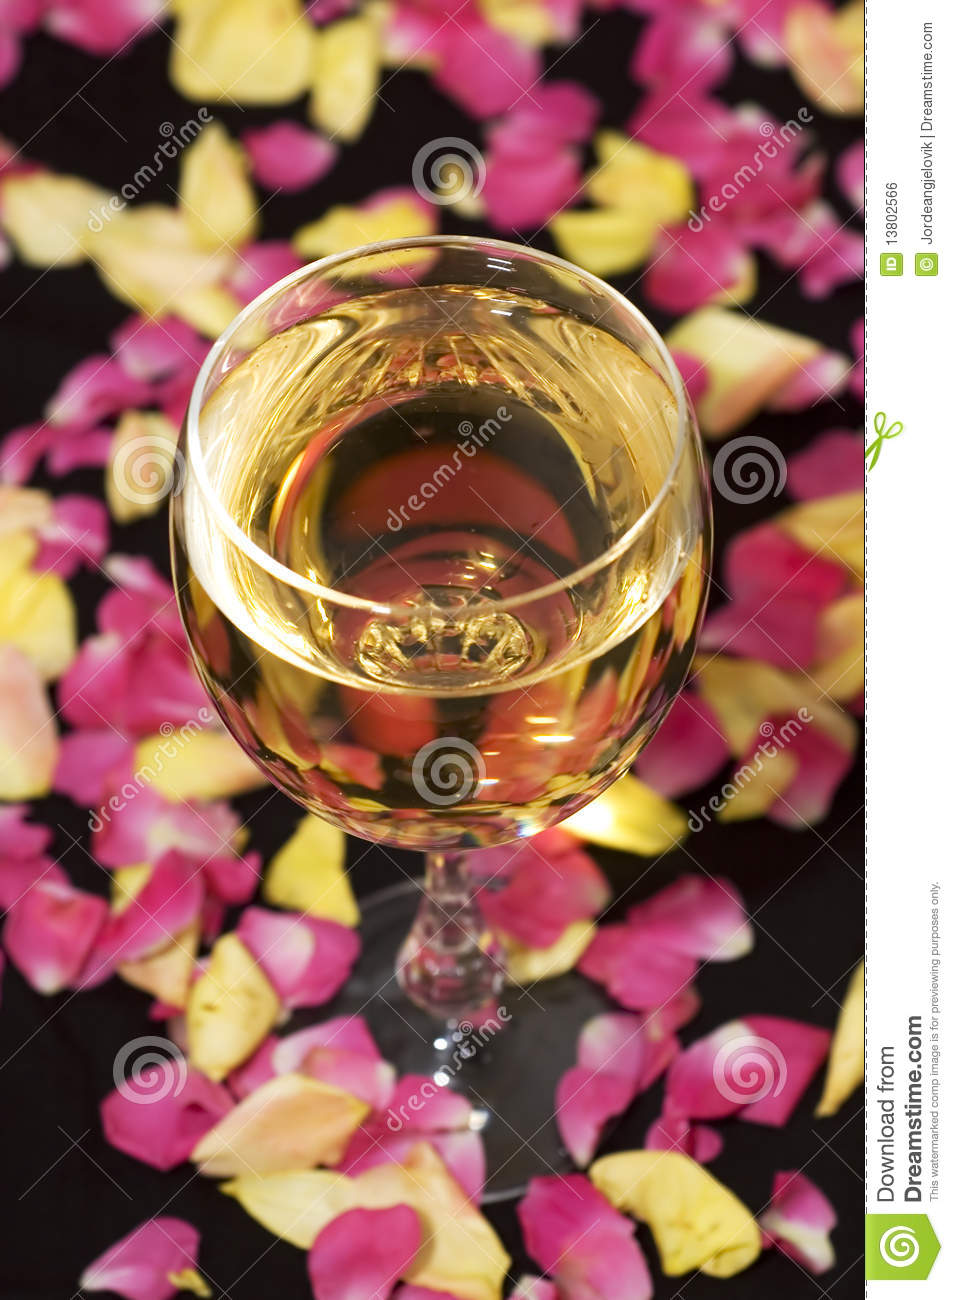 Glass of wine with leaves